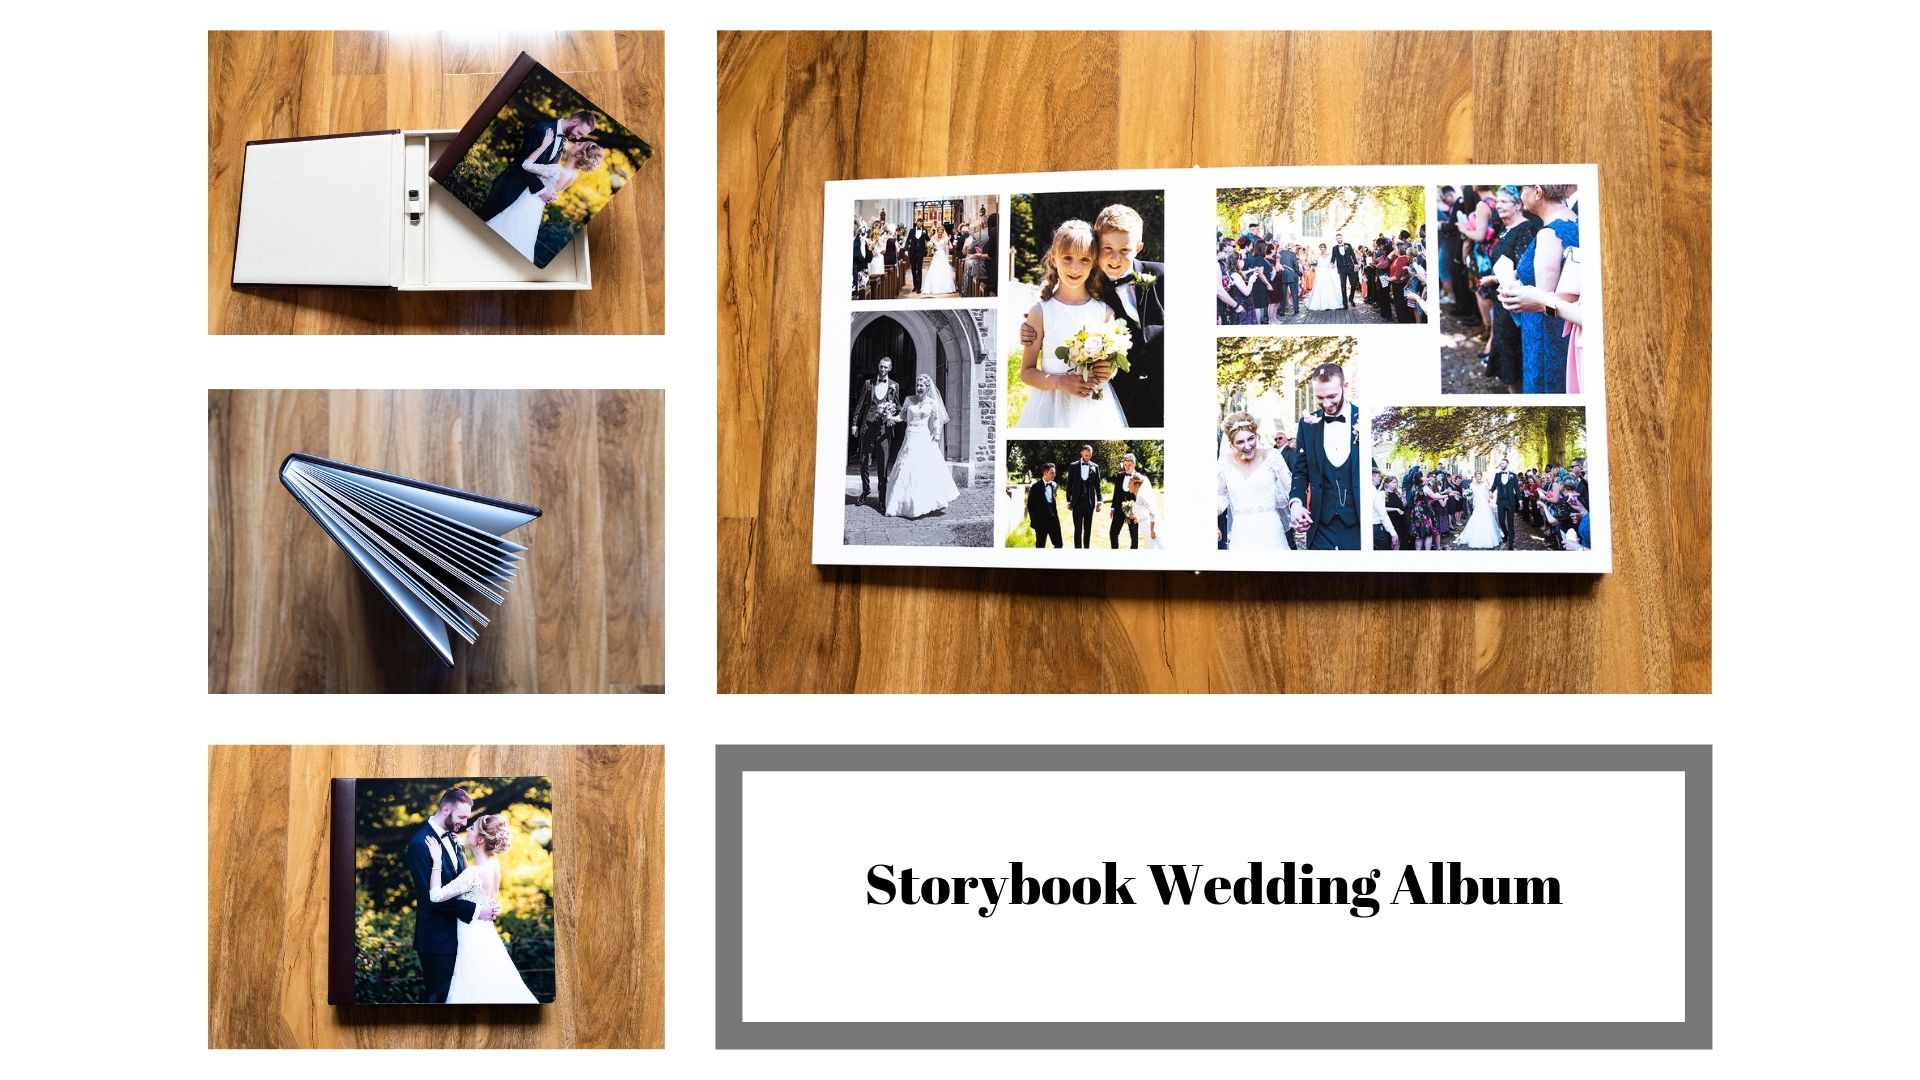 Collage of storybook wedding album